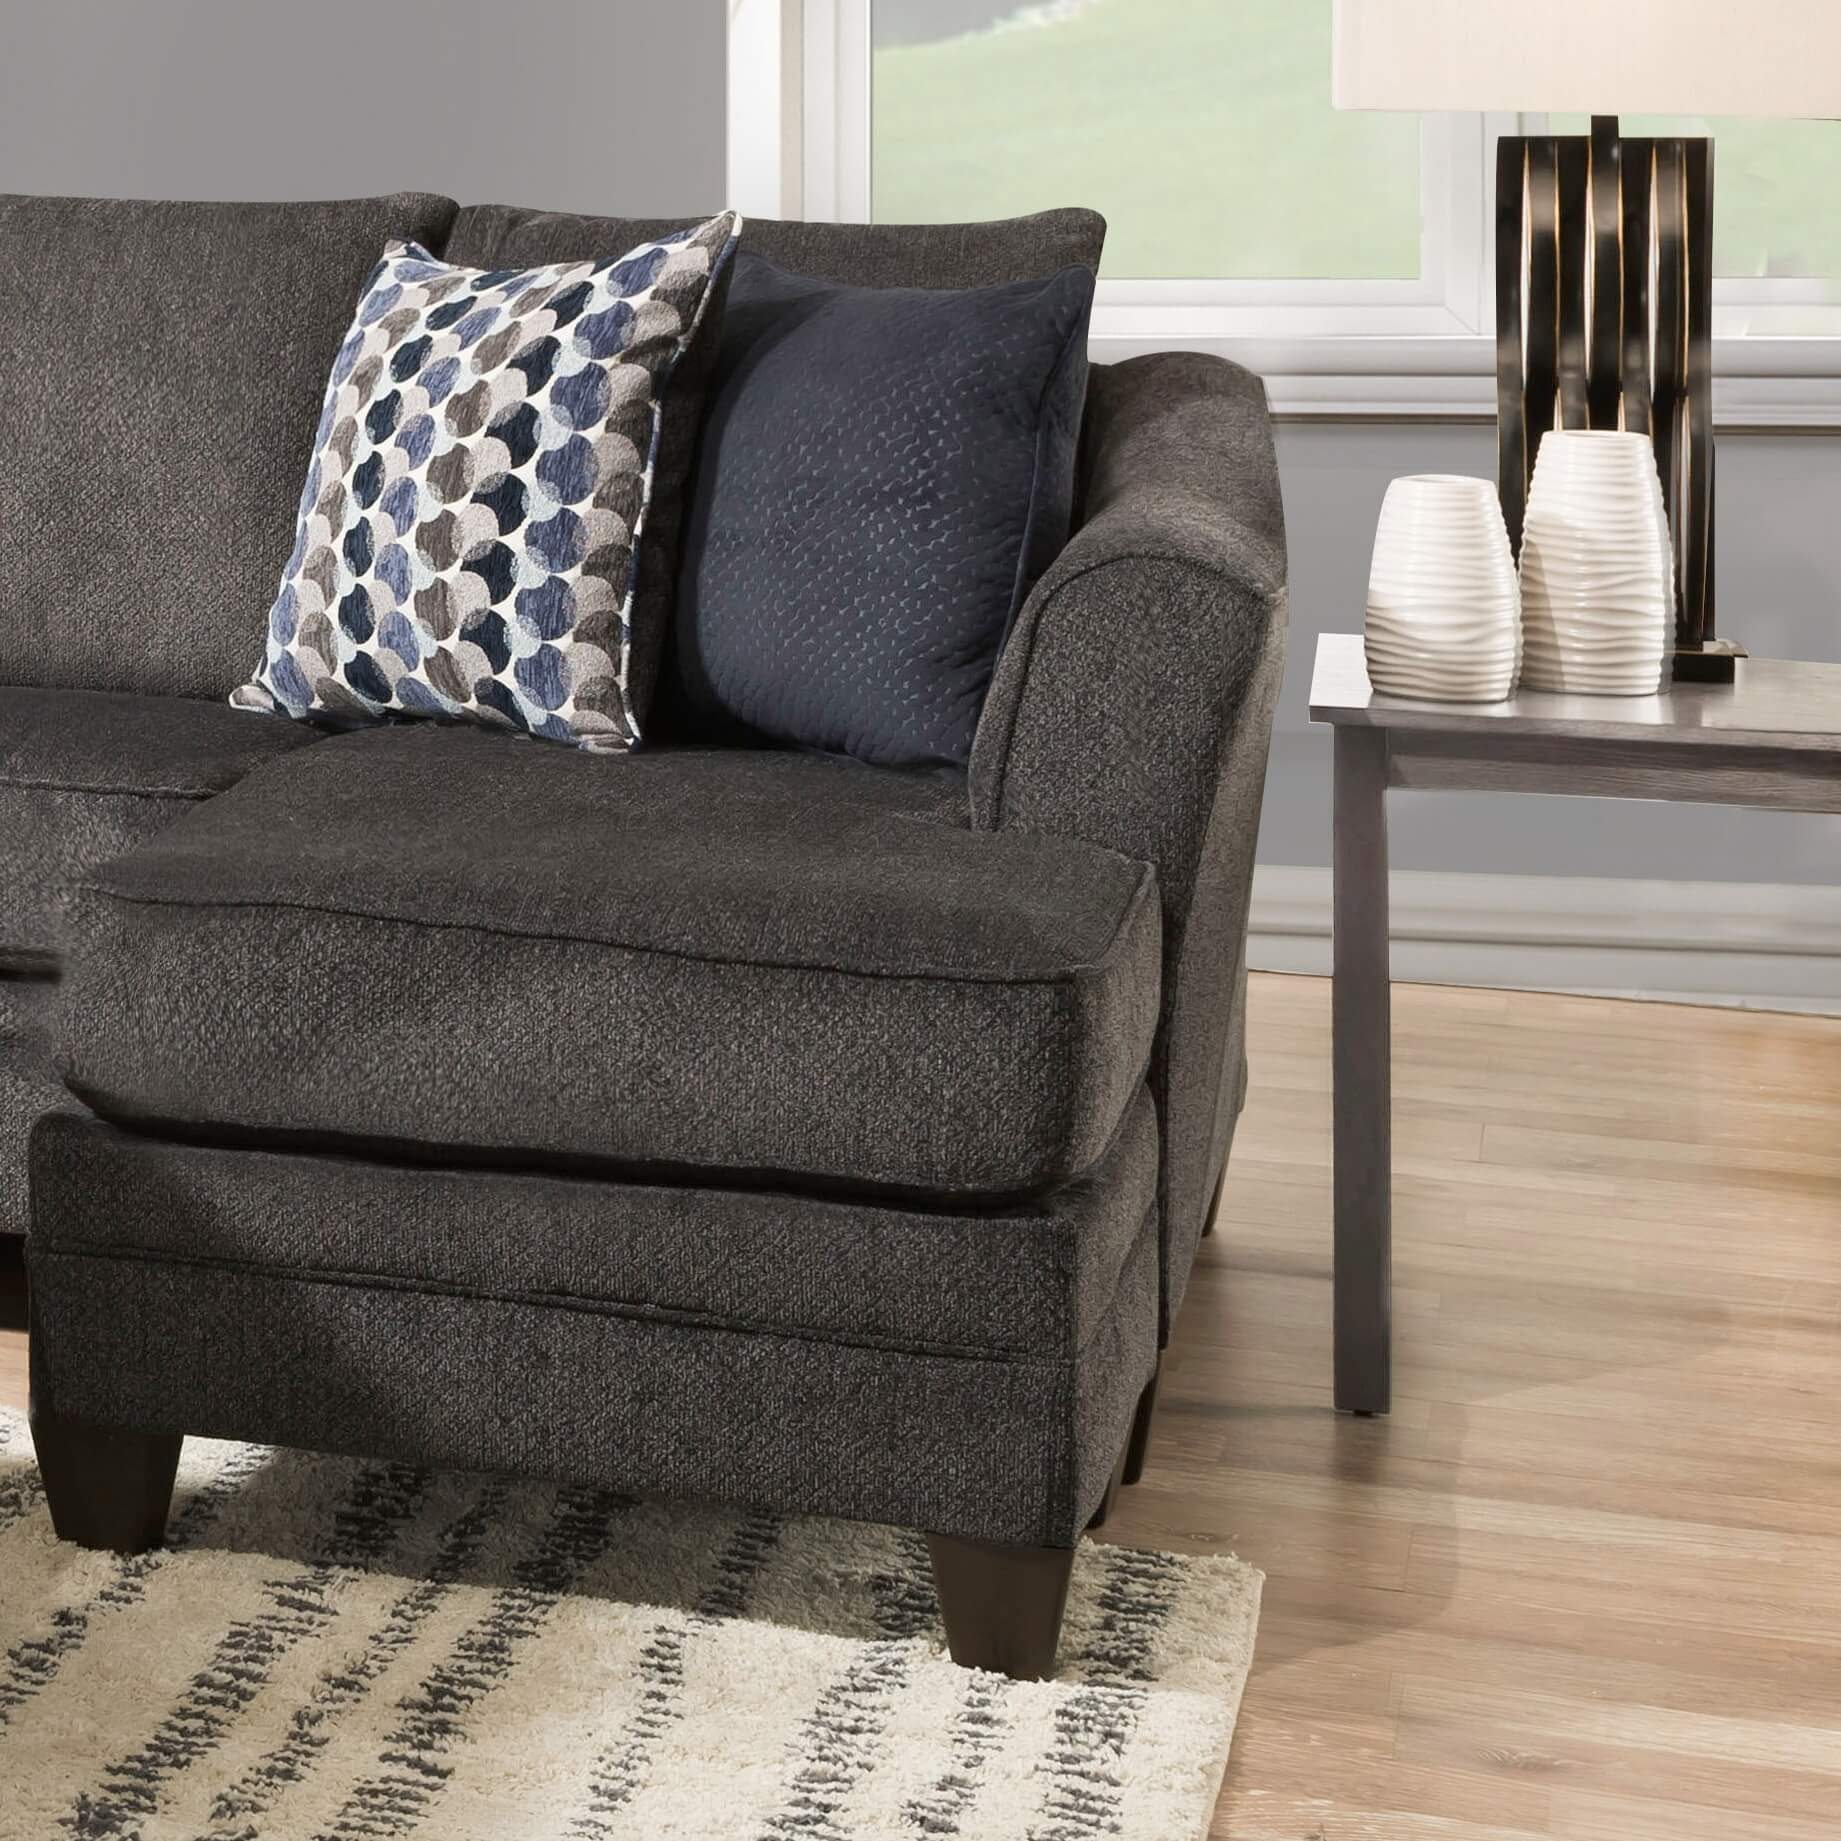 7-Piece Bubbles Living Room Collection